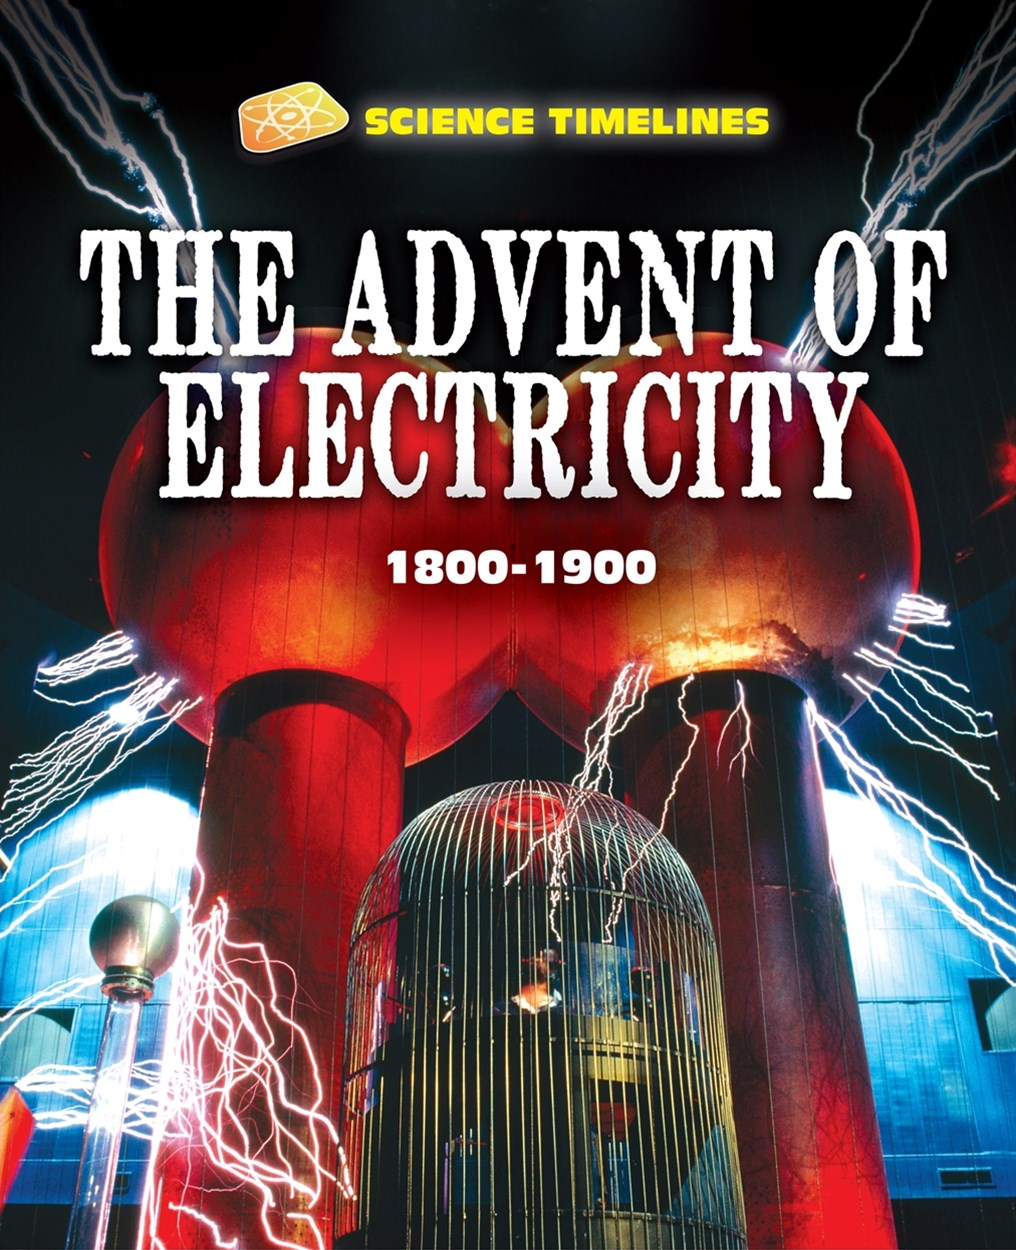 The Advent of Electricity, 1800-1900